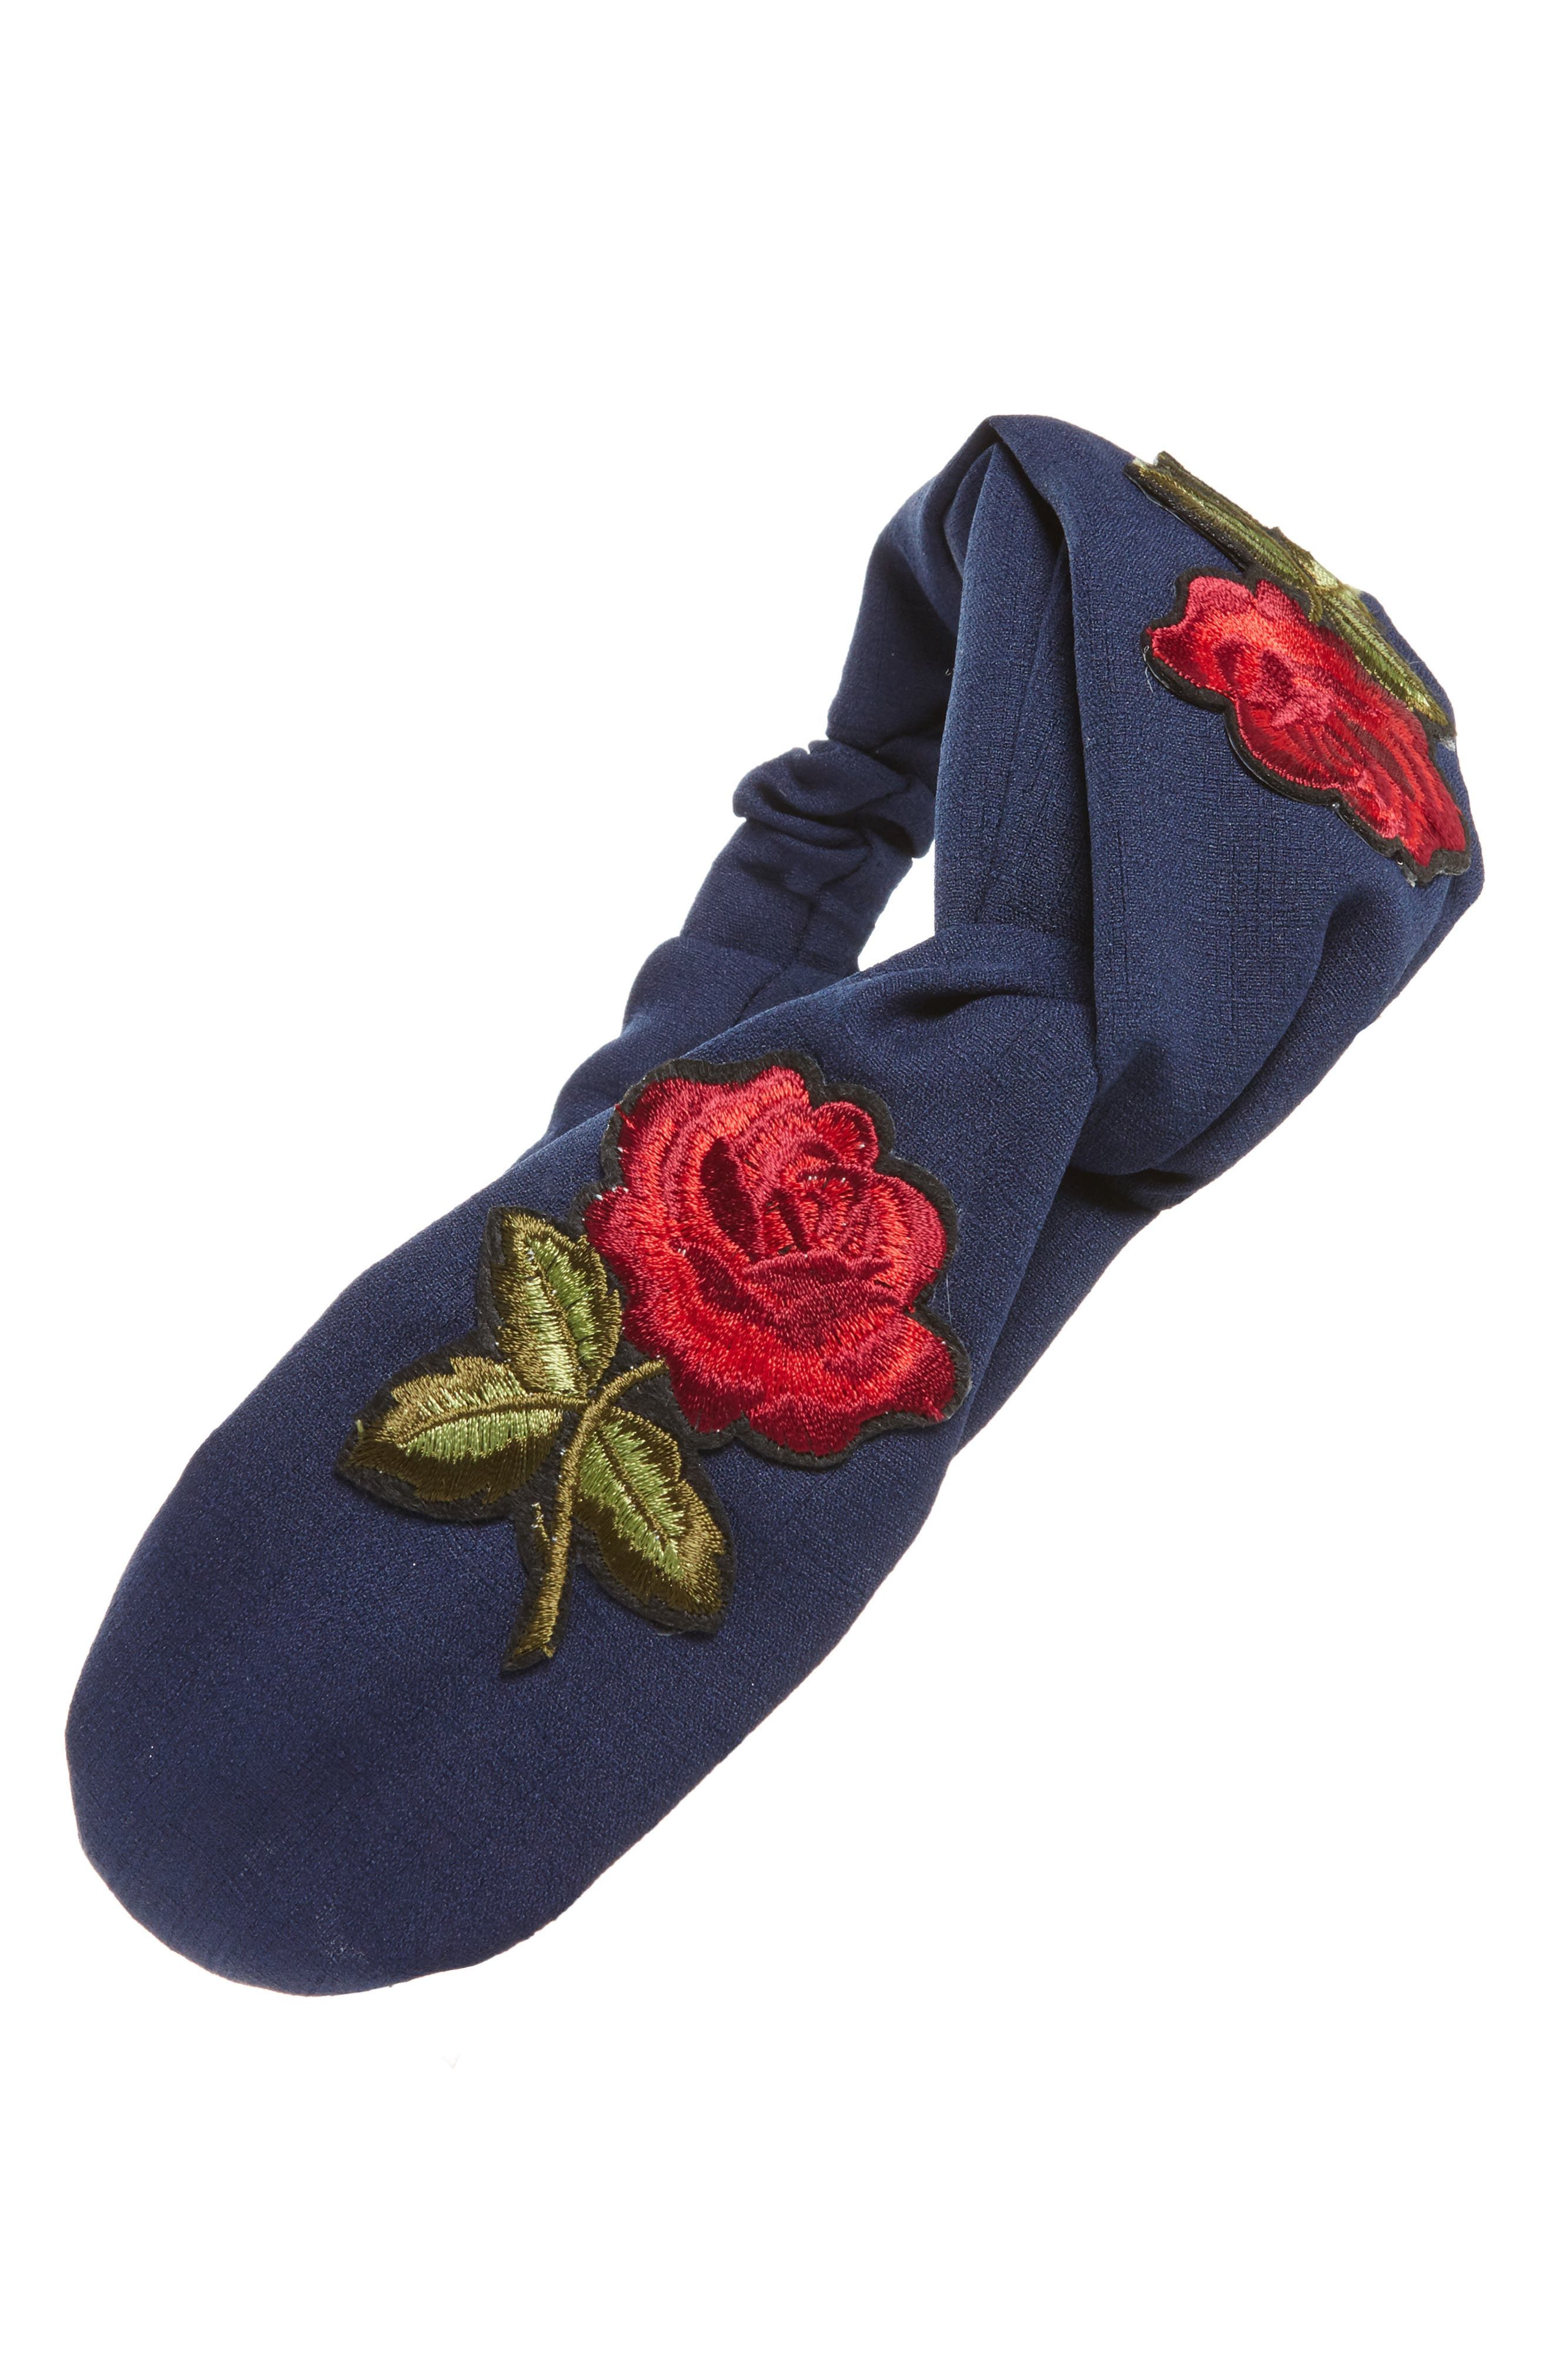 Embroidered Rose Patch Twist Head Wrap,                             Main thumbnail 1, color,                             420